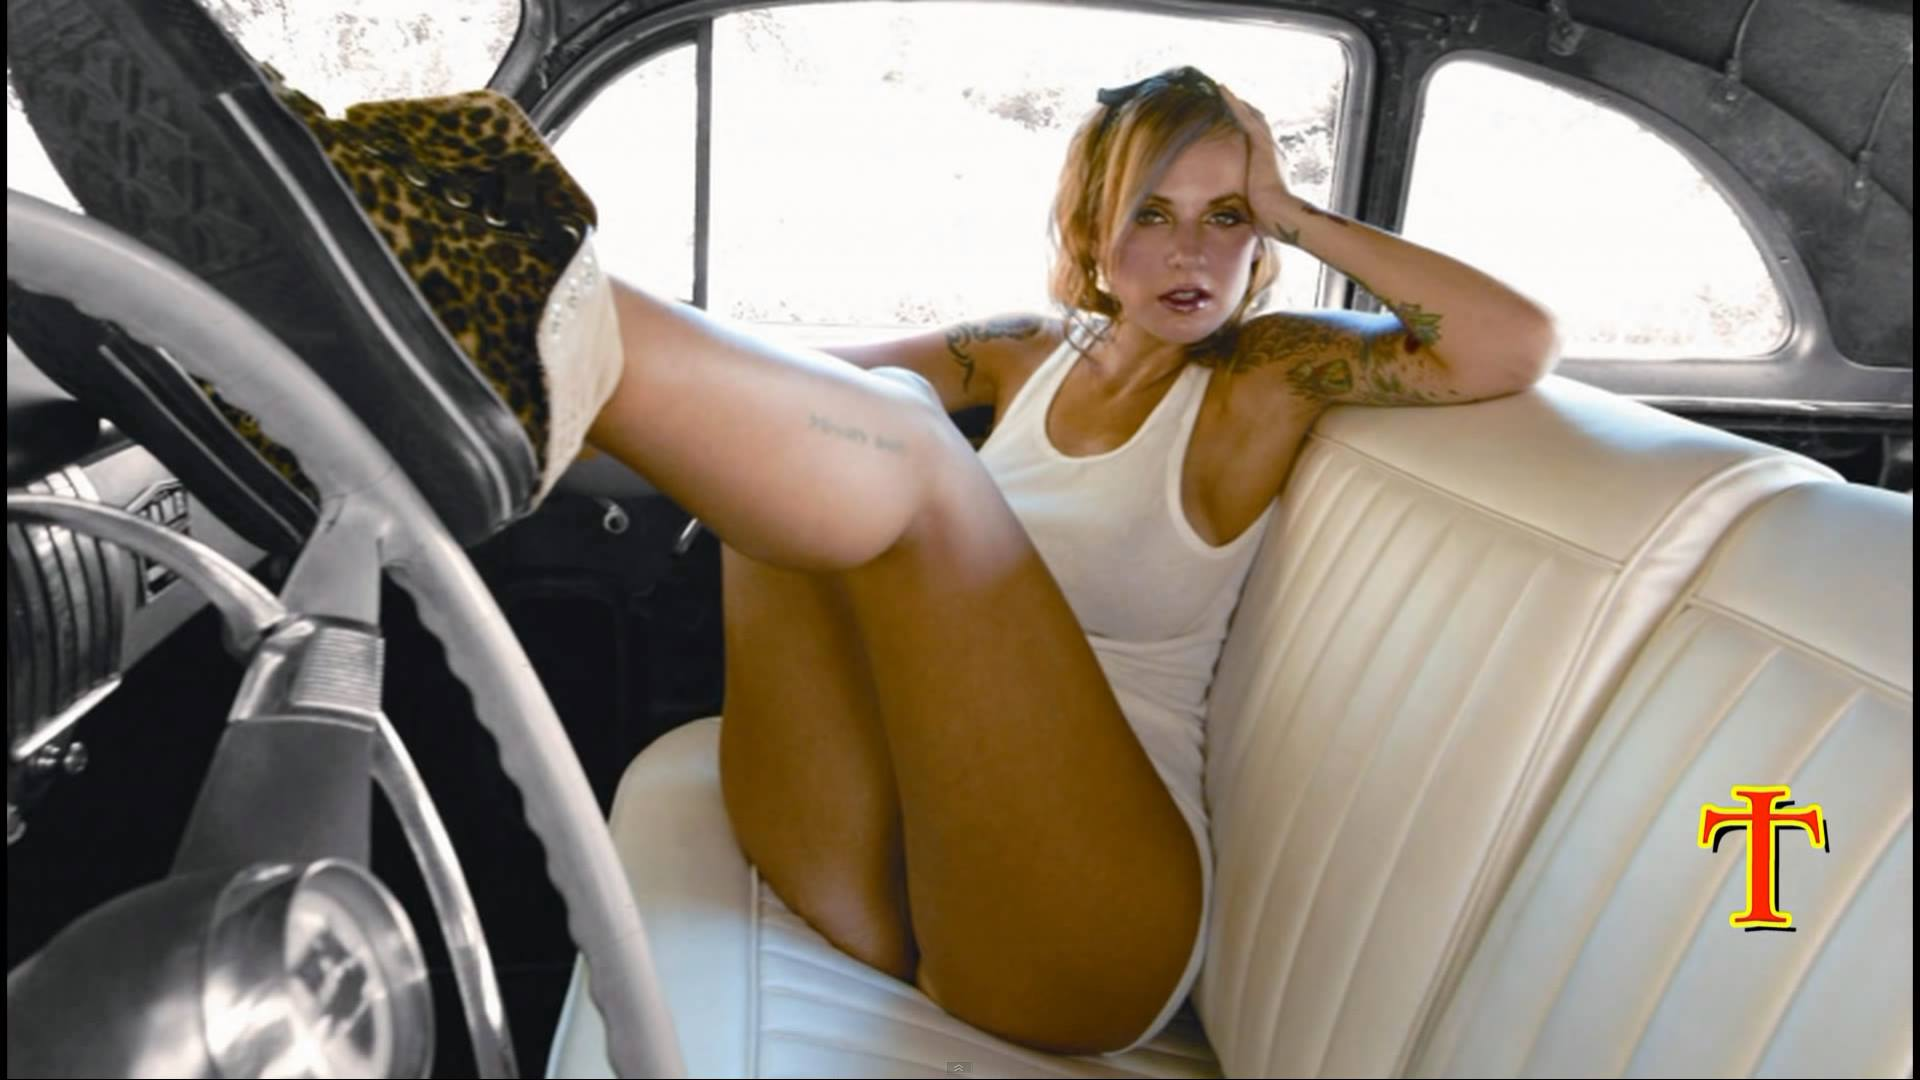 Tank Girl Wallpaper 4k Hot Country Girl Muscle Car